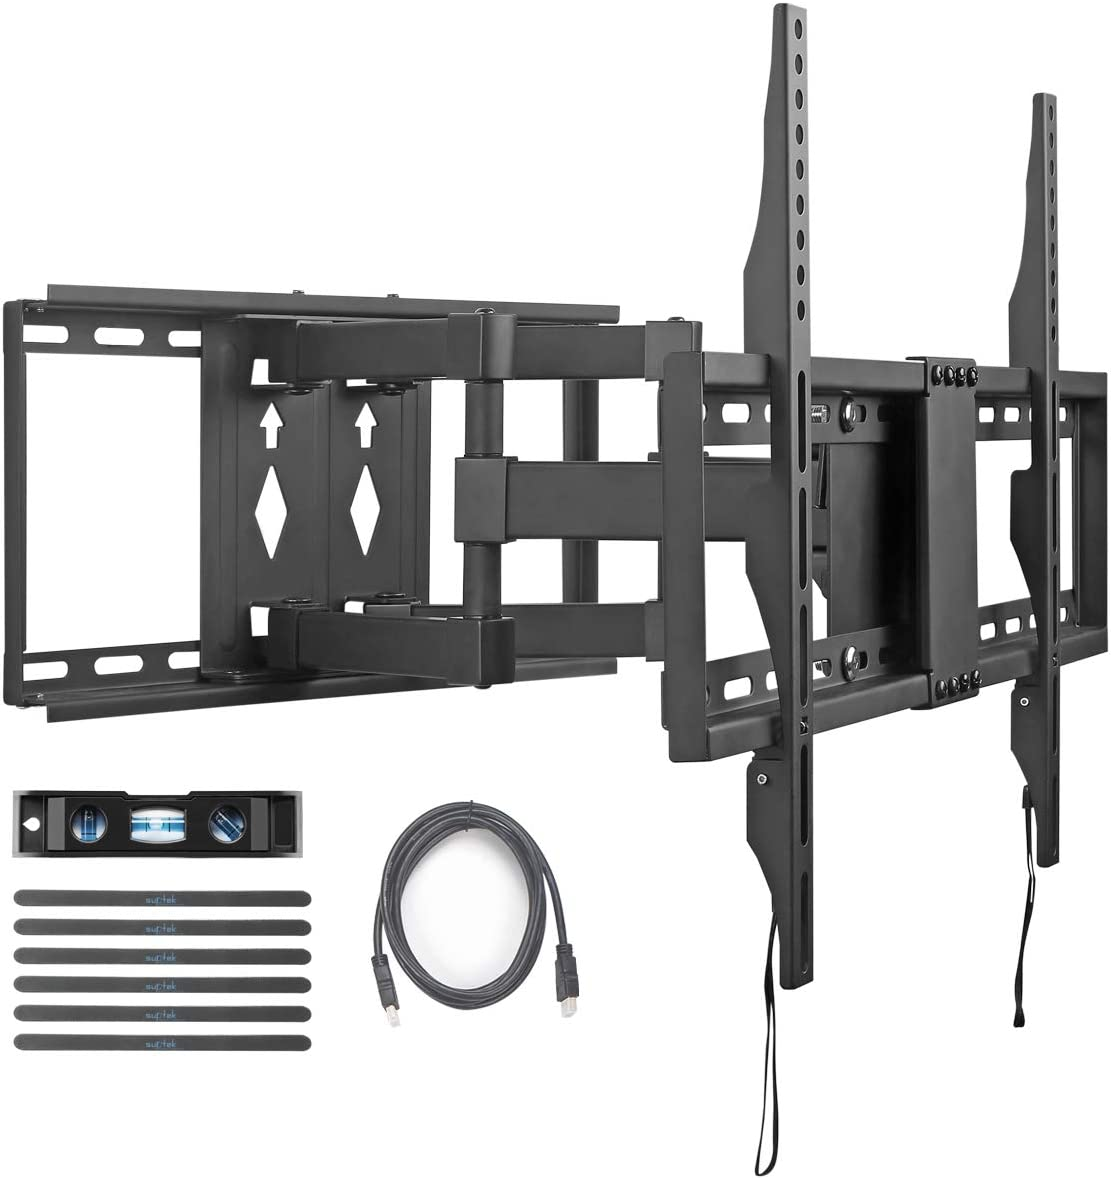 Suptek TV Wall Mount Bracket Full Motion Dual Articulating Arm for Most 32-70 Inch LED, LCD, OLED, Flat Screen, Plasma TVs up to 110lbs VESA 600×400 with Tilt, Swivel and Rotation (A6)